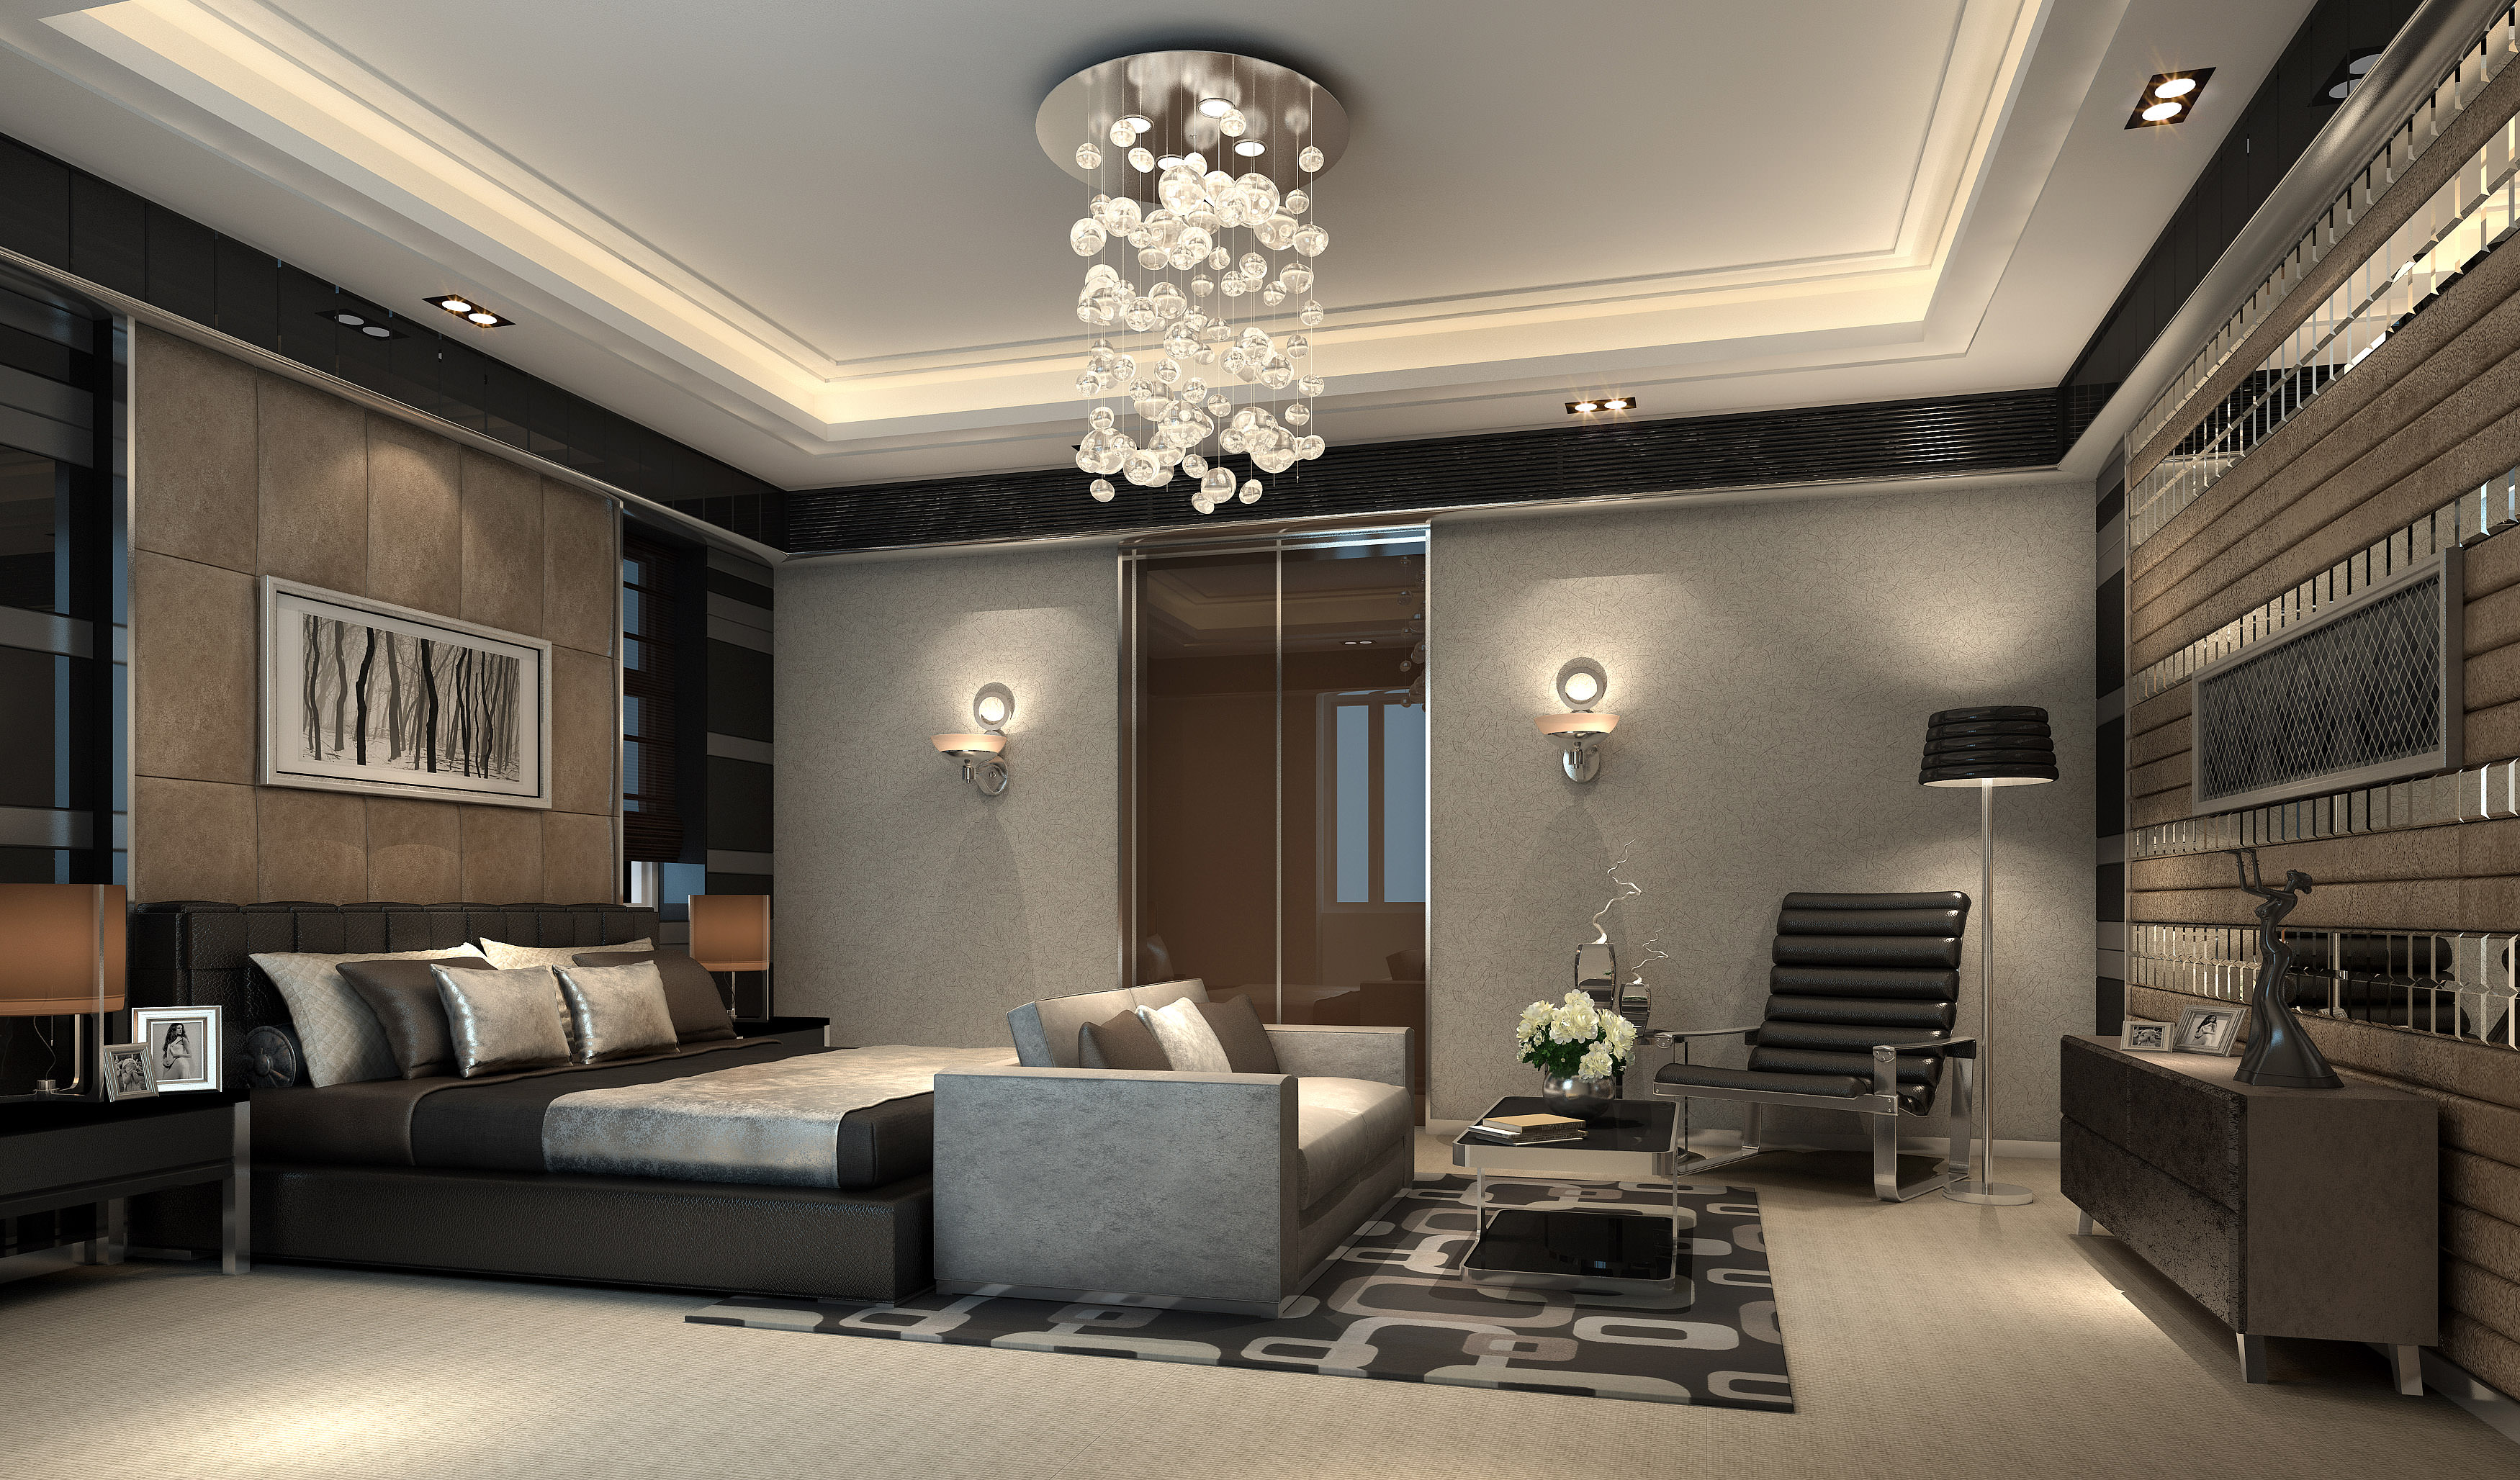 Kids Bedroom 3d Model luxurious bedroom with big bed fully furnished 3d model max